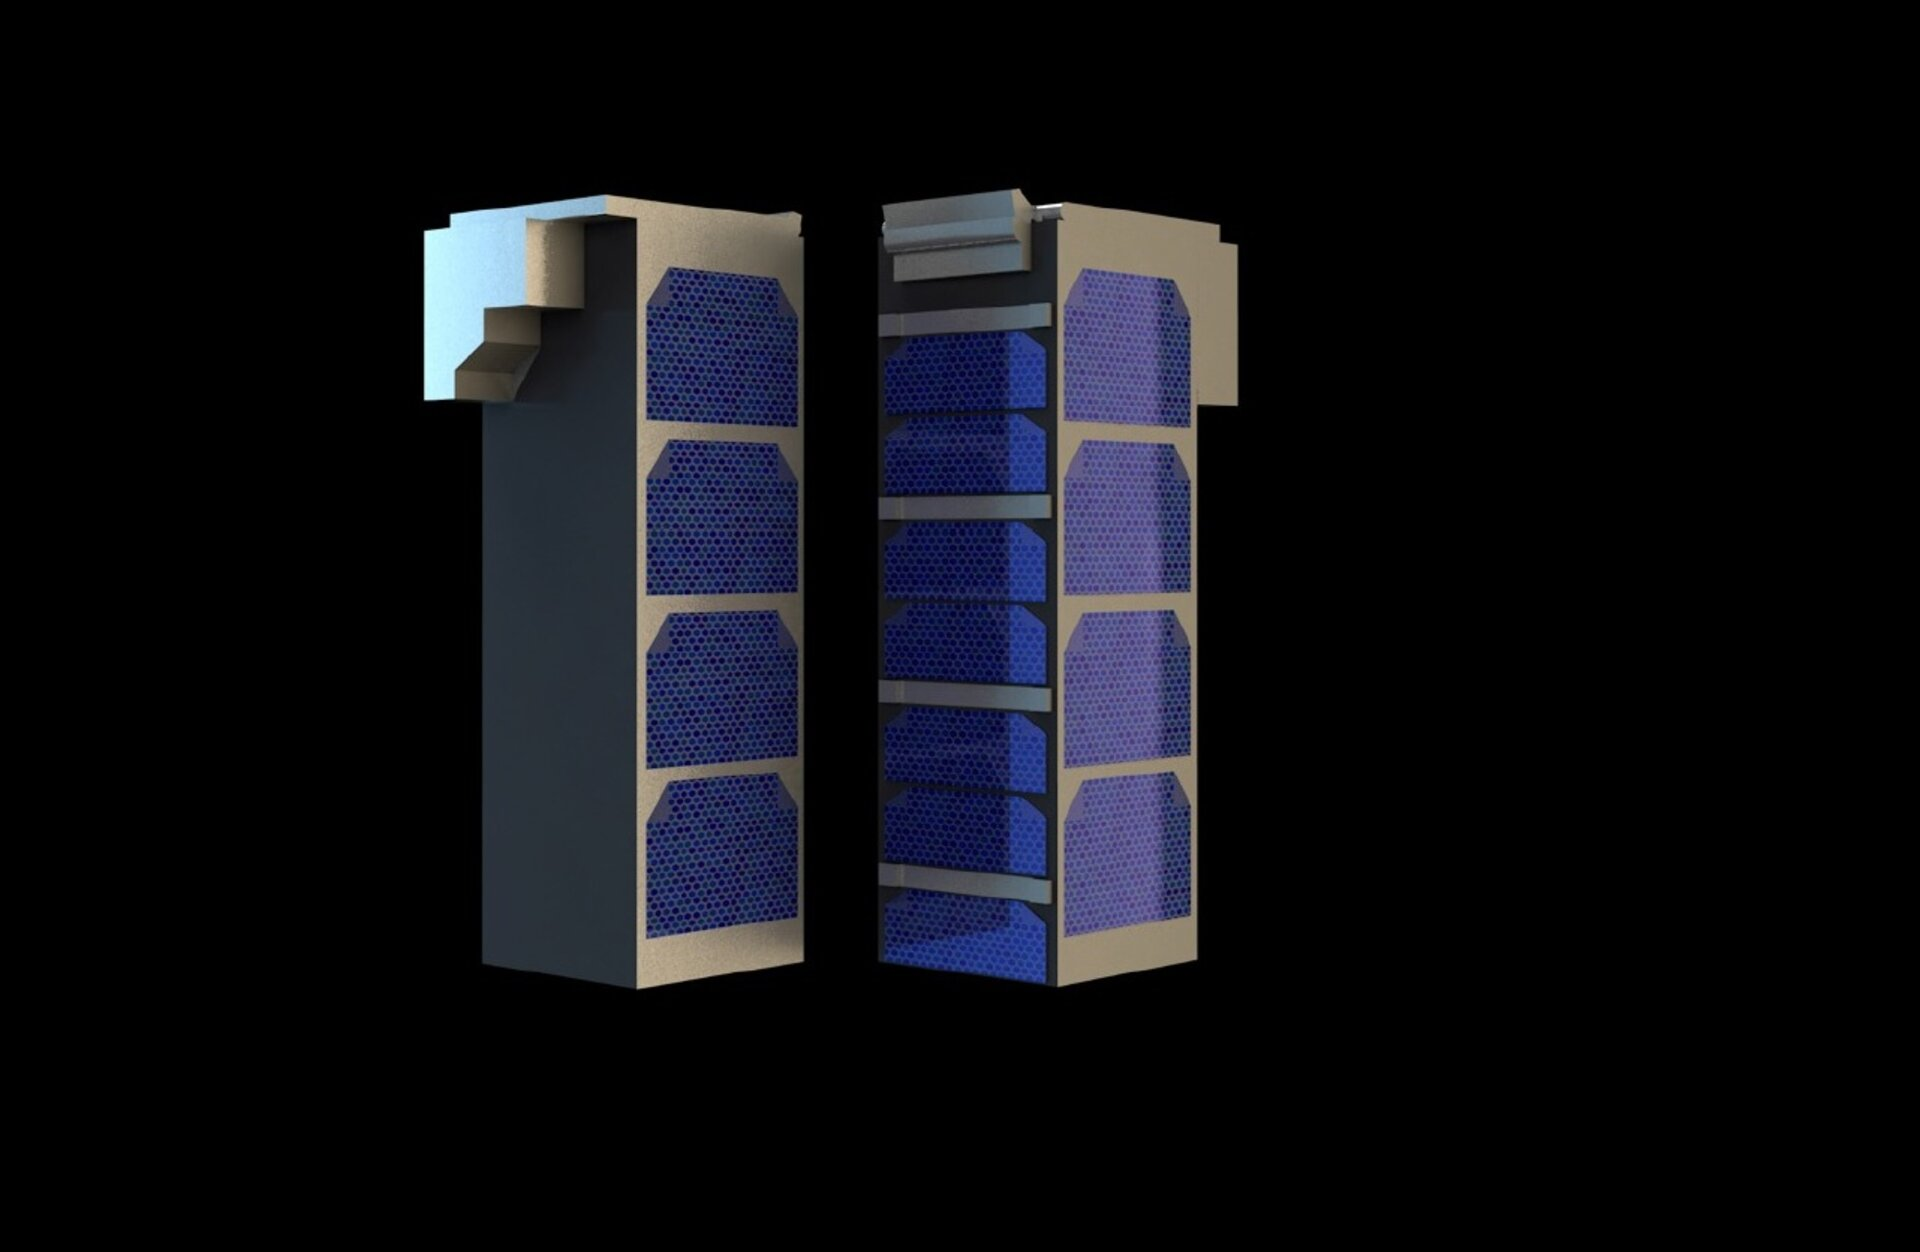 Triple-unit CubeSats